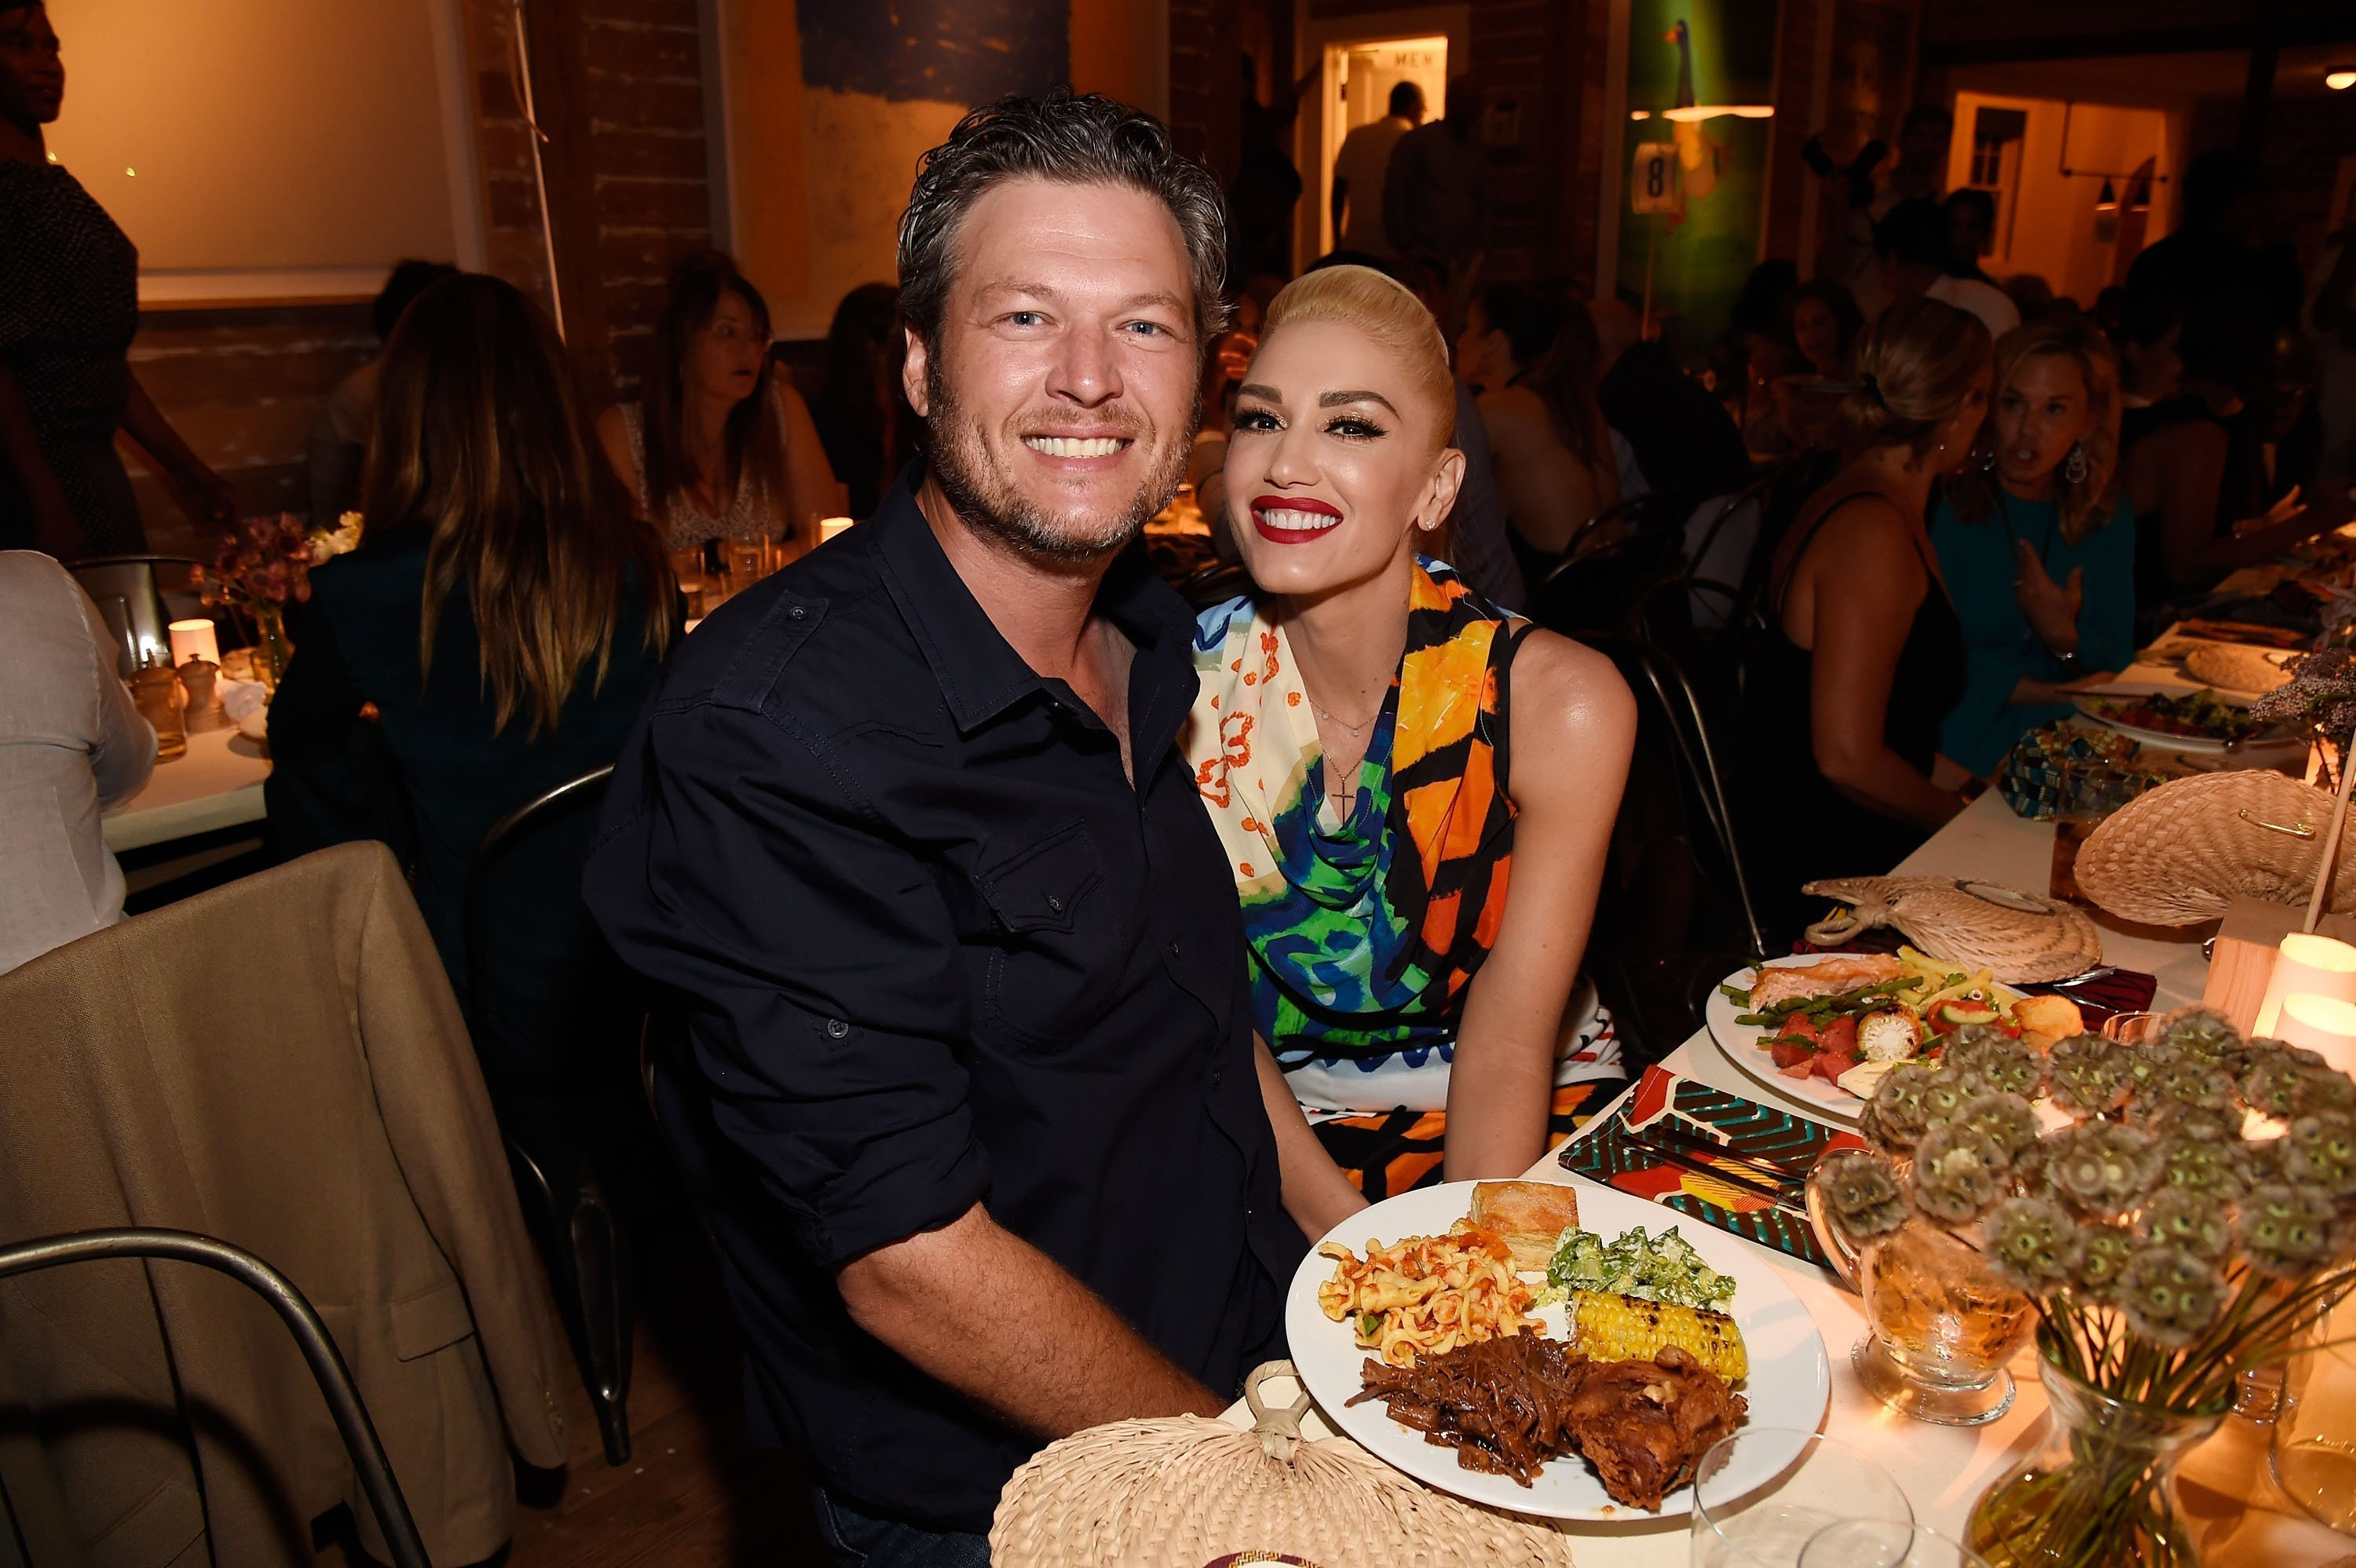 Blake Shelton and Gwen Stefani attend Apollo in the Hamptons at The Creeks on August 20, 2016 in East Hampton, New York | Photo: Getty images